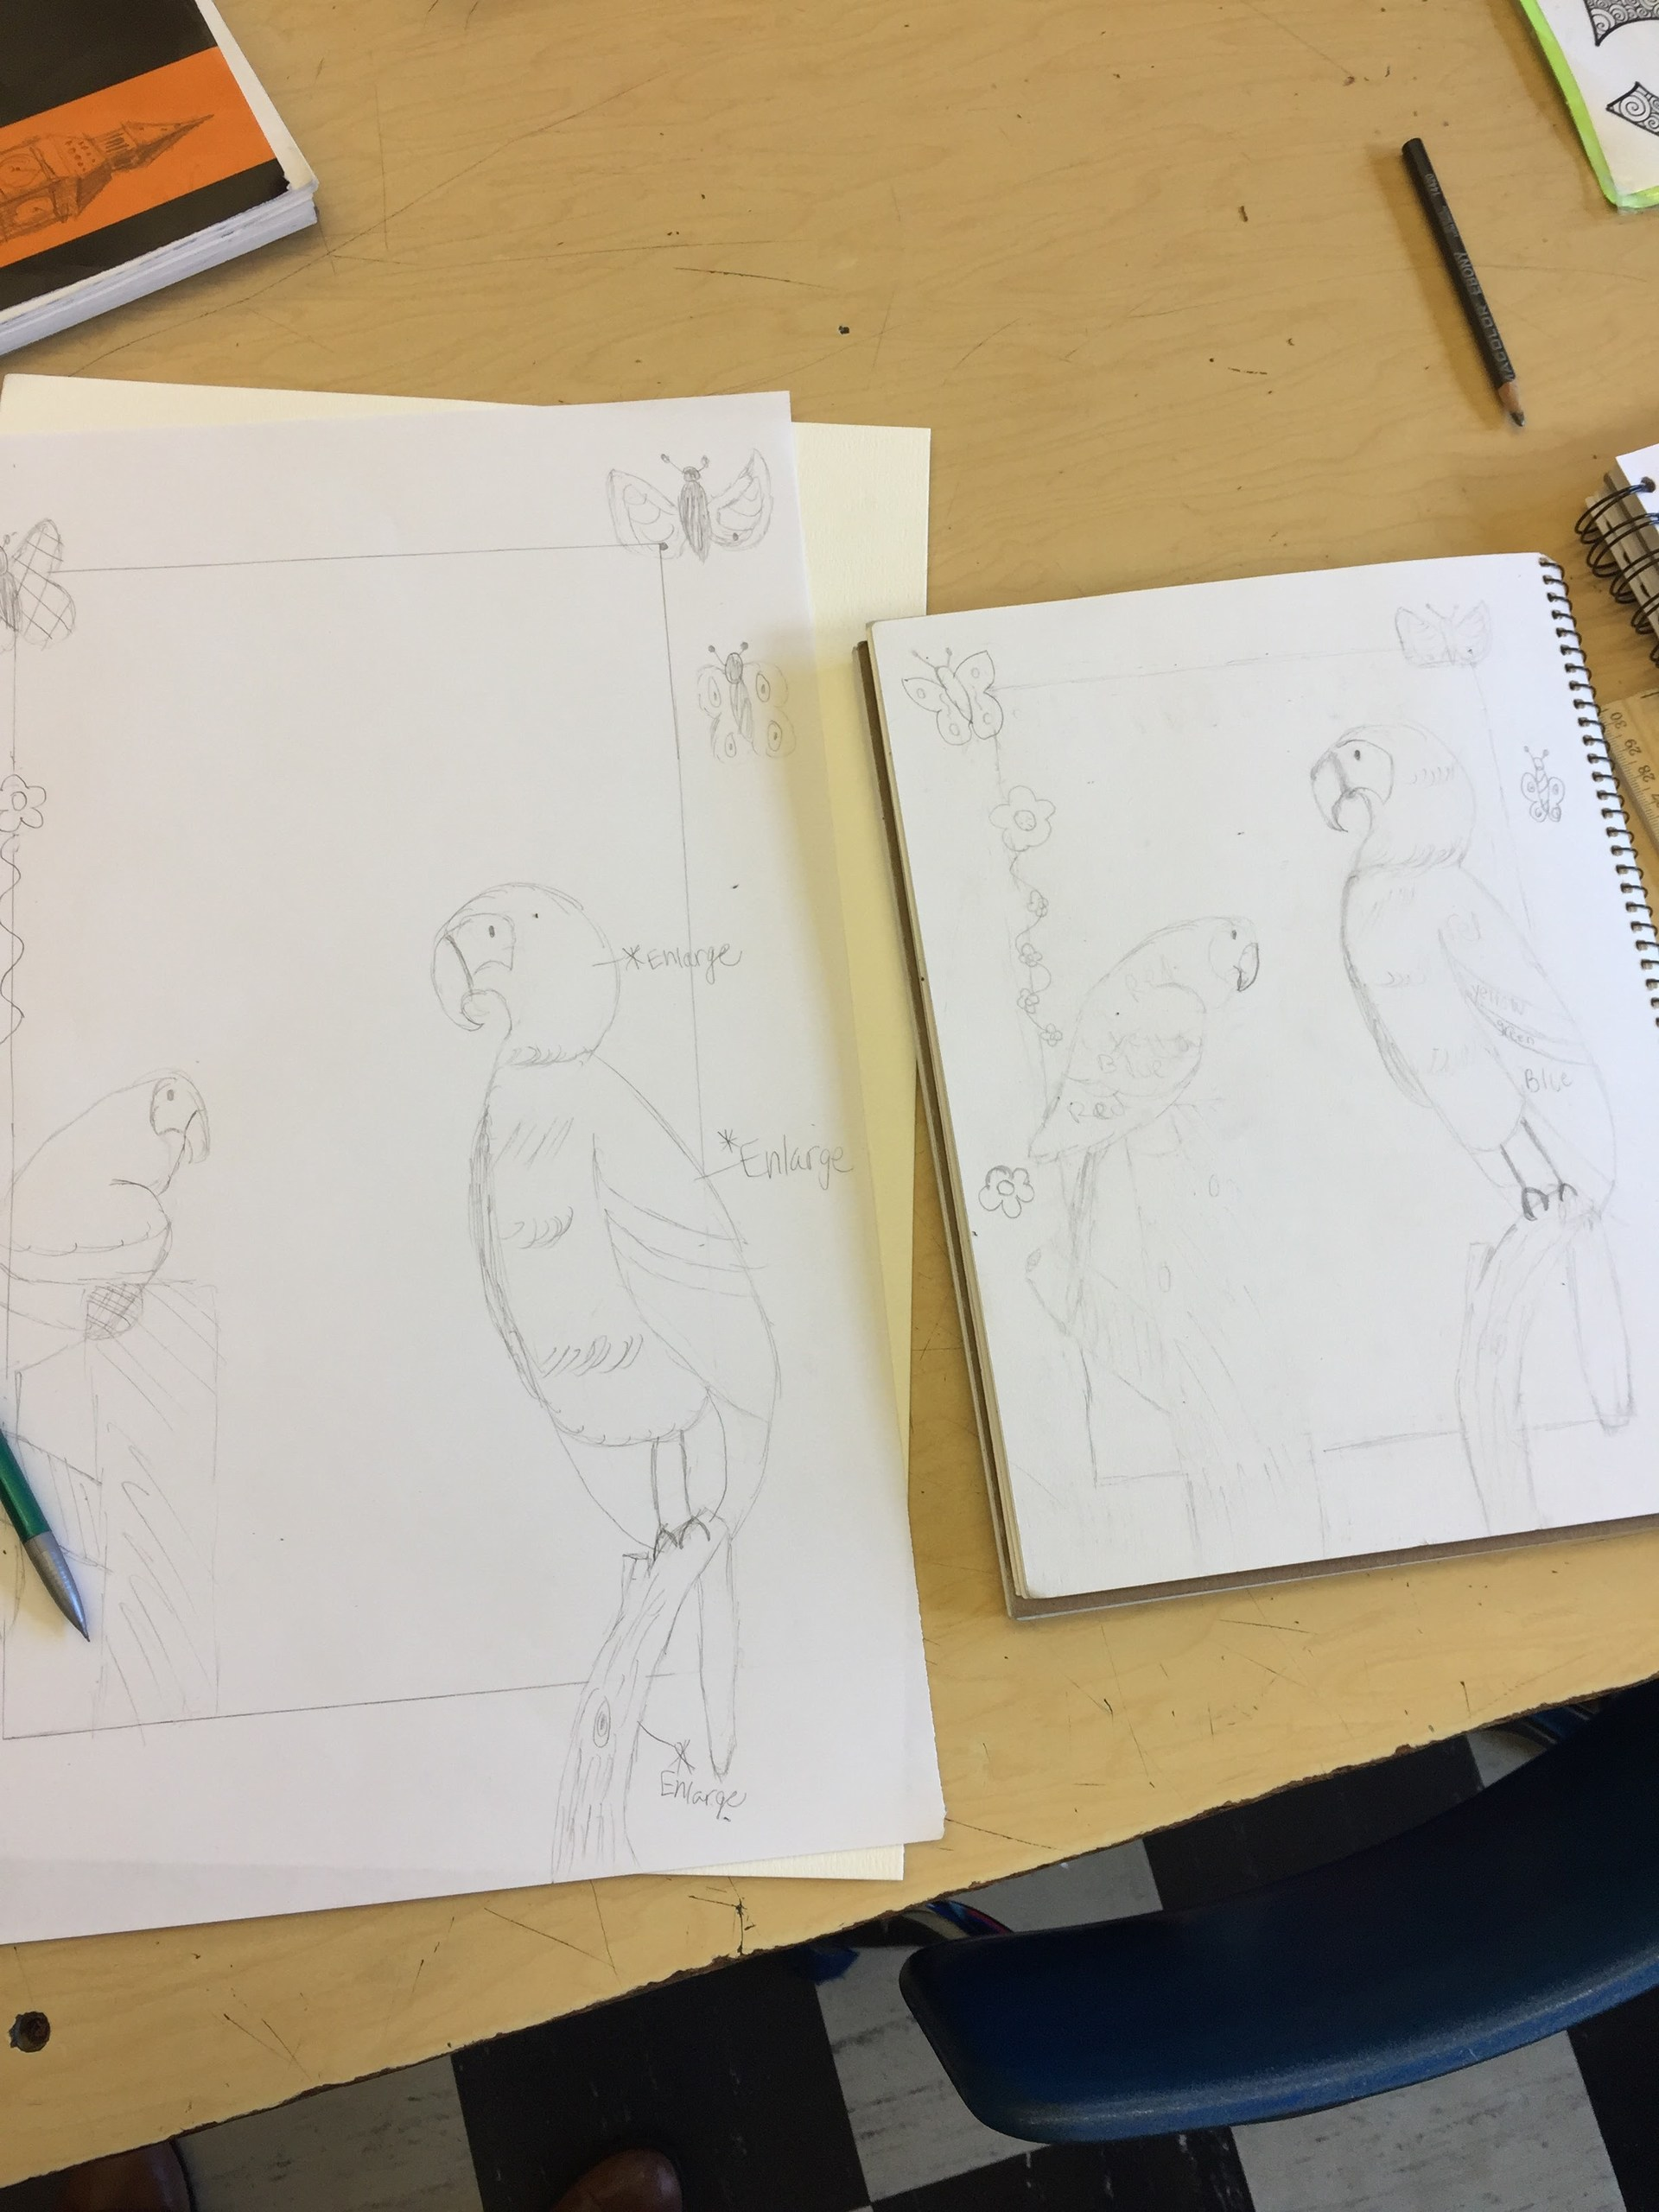 8th graders working on 'Beyond the Border' watercolors